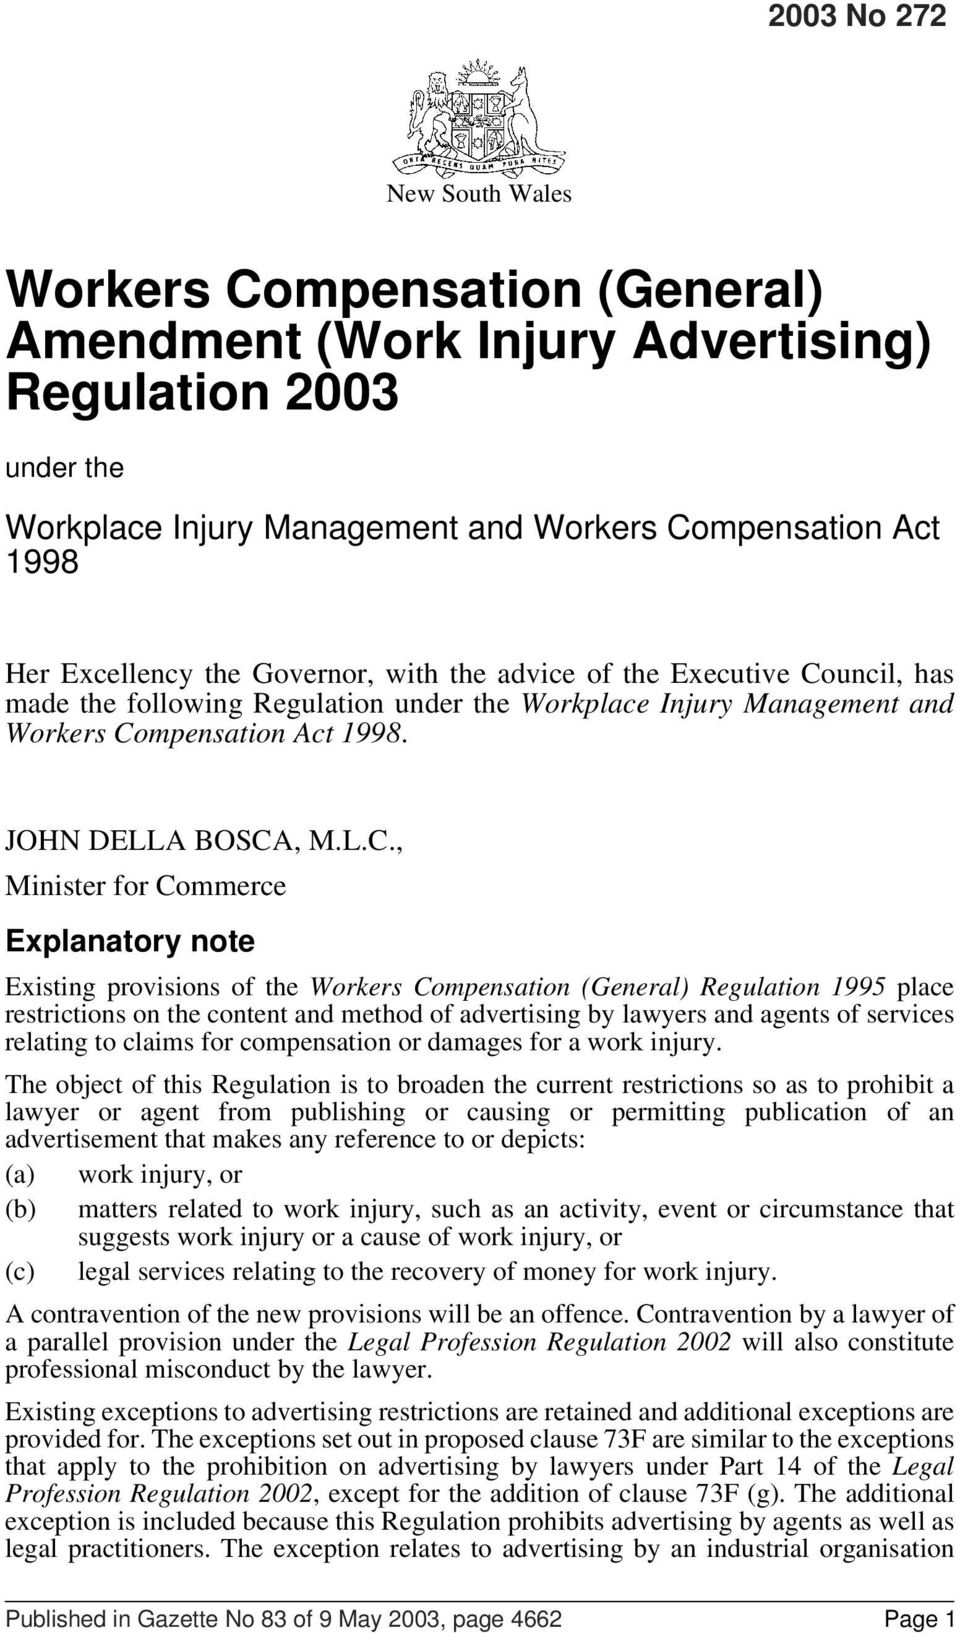 uncil, has made the following Regulation under the Workplace Injury Management and Workers Co